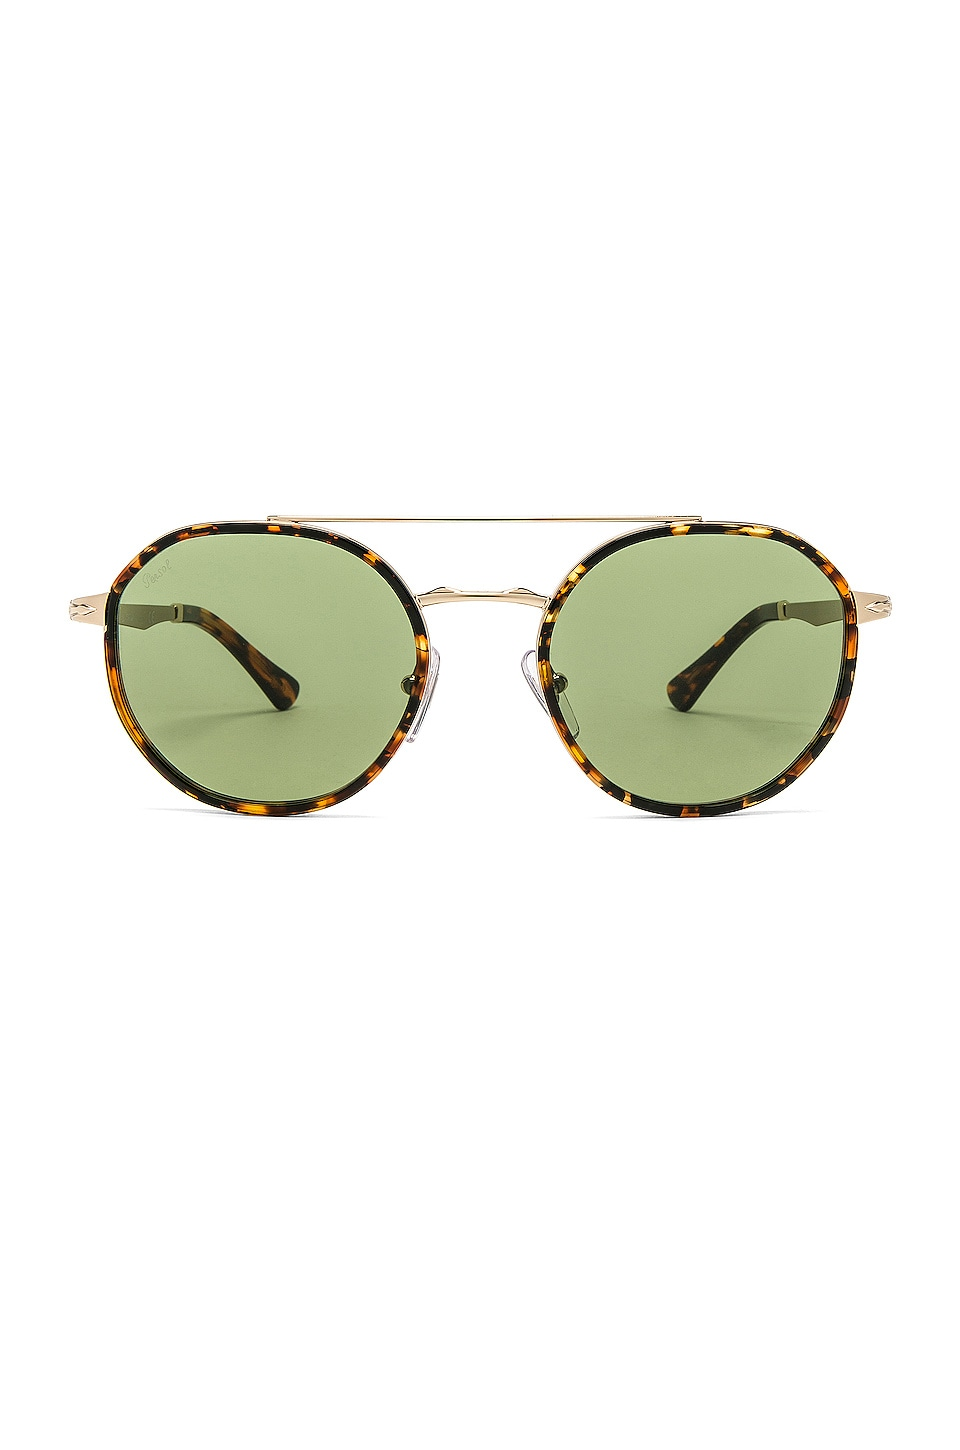 Persol PO2456S in Gold & Green